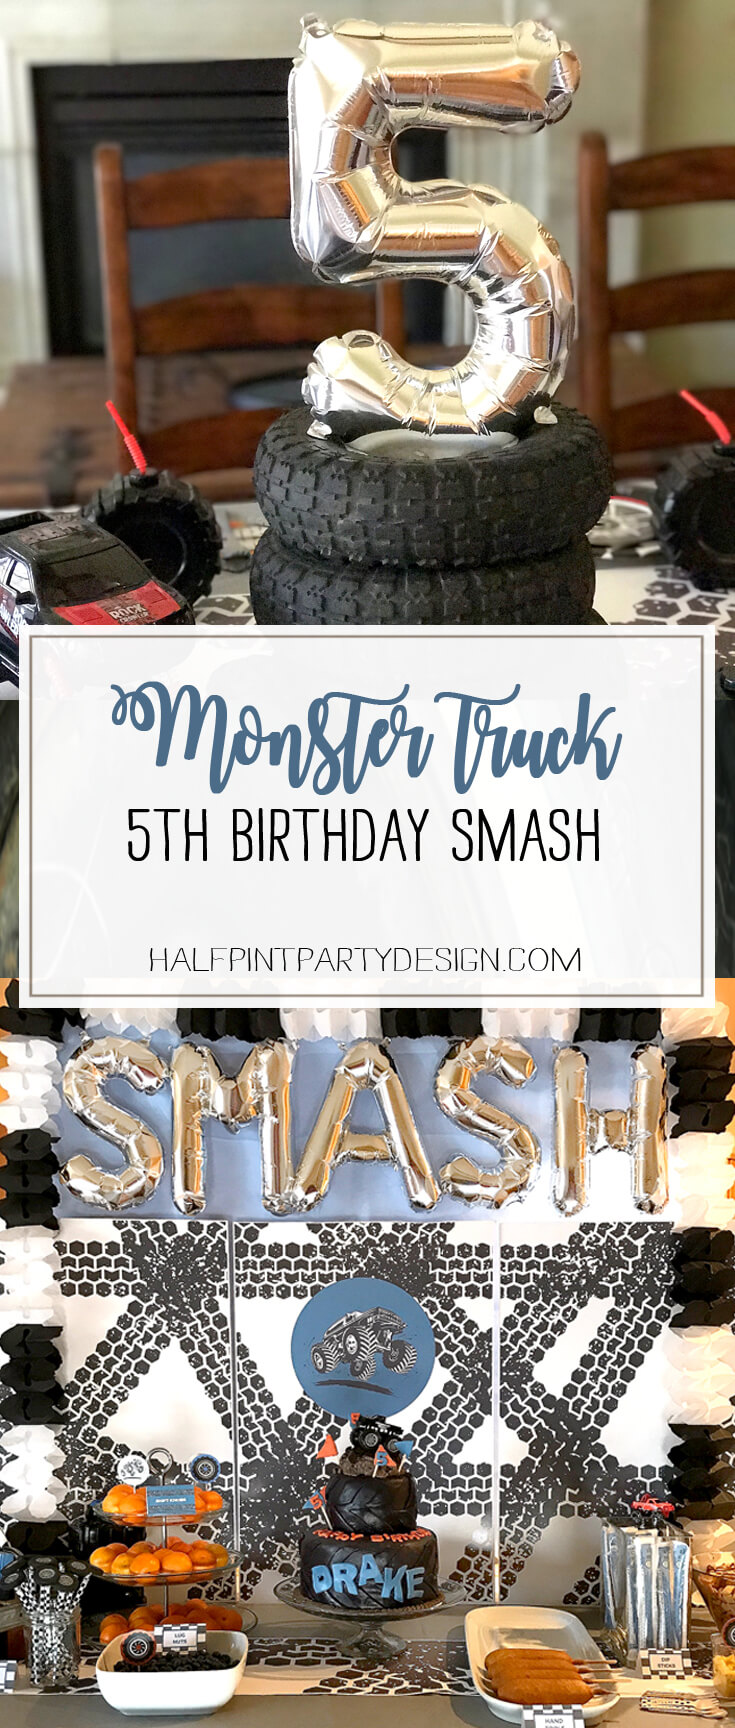 Monster Truck Birthday Party Smash! Halfpint Design with Party Printables from HalfpintPartyDesign on Etsy. Boy party theme. 5th birthday.